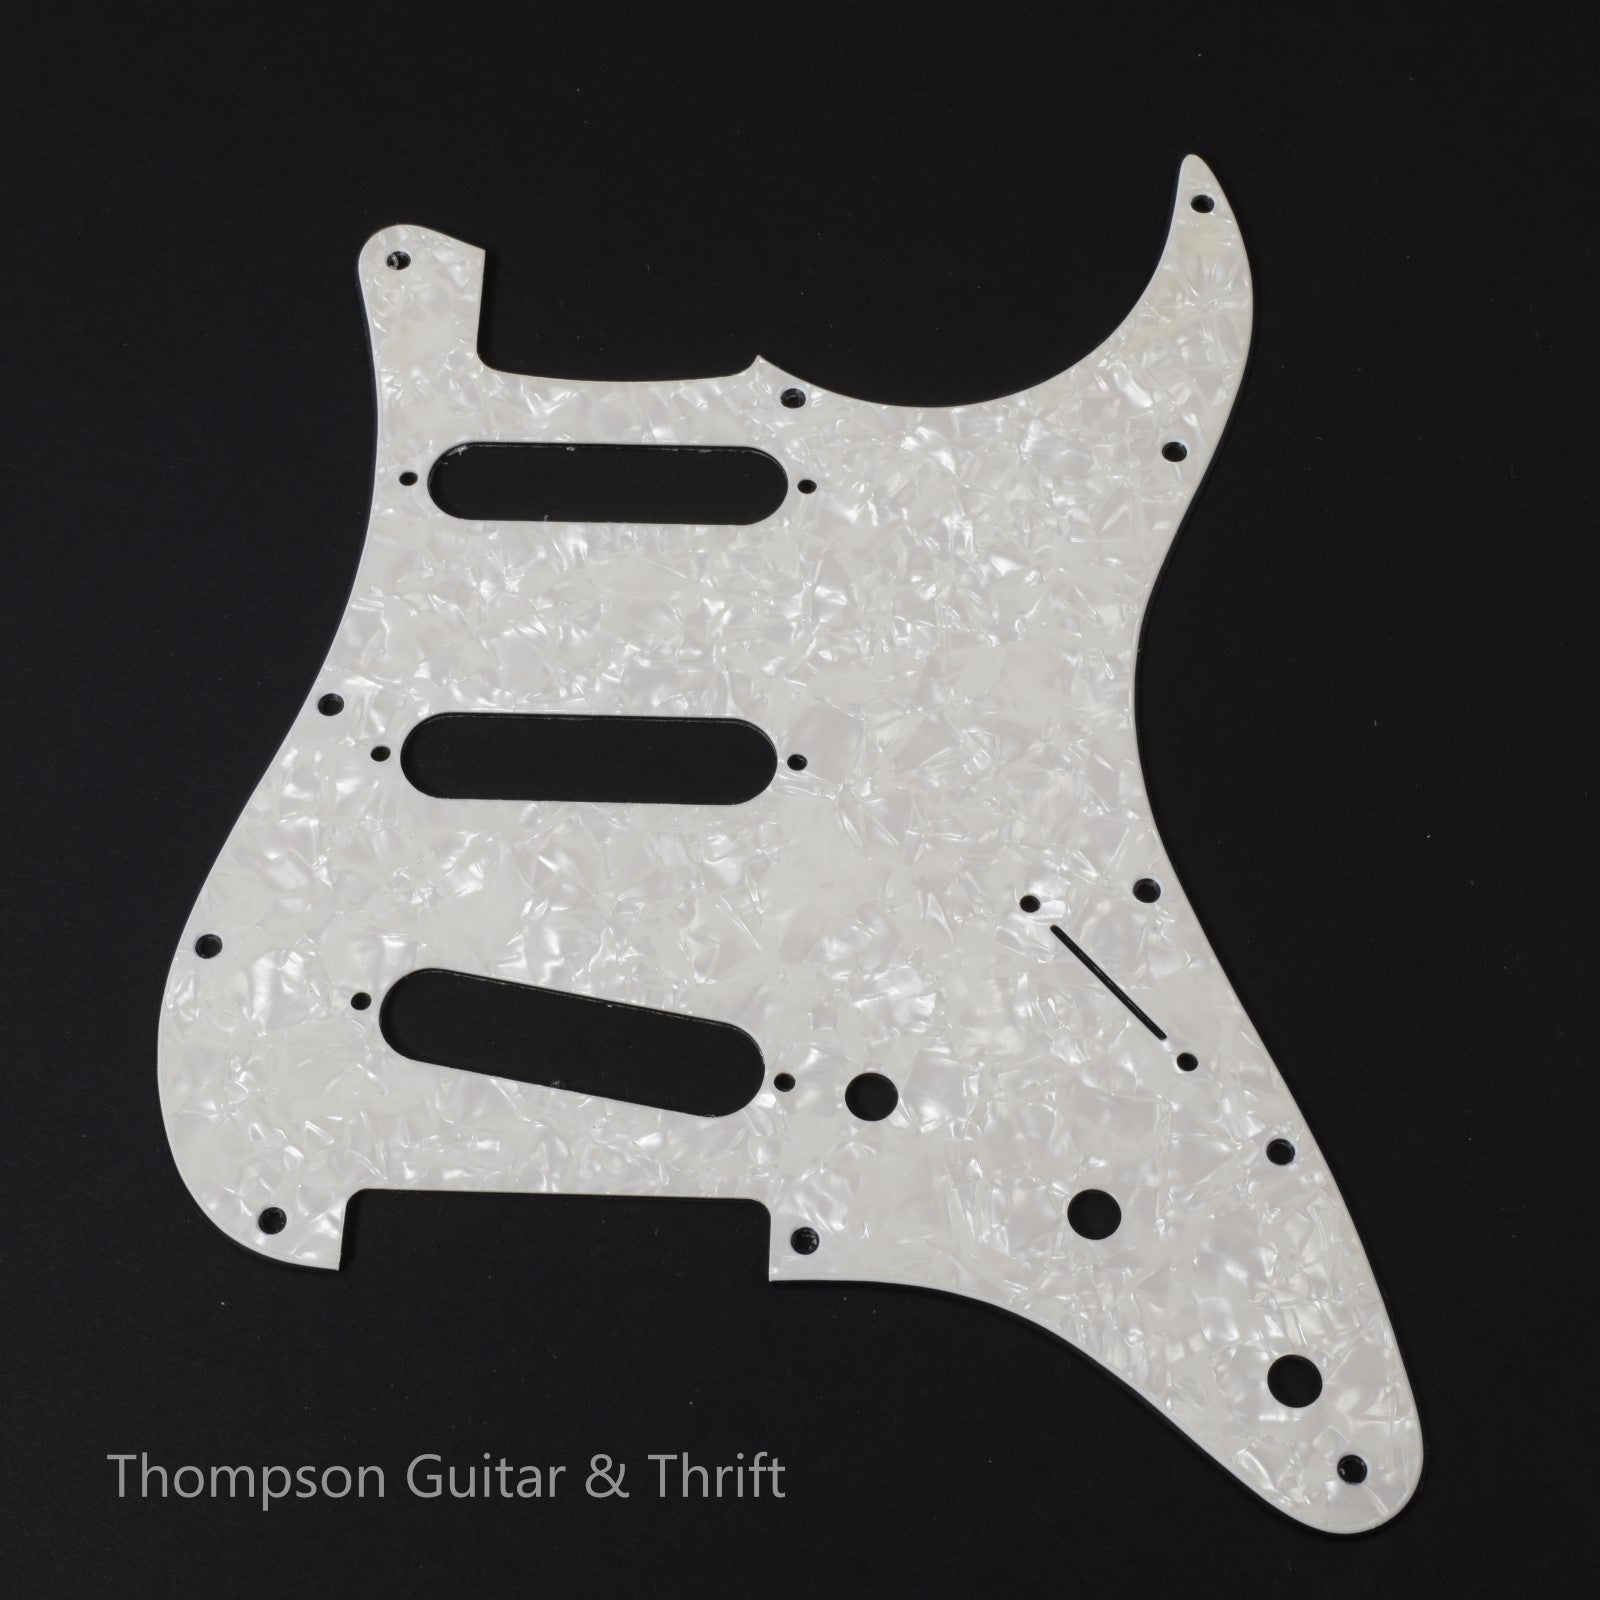 White Pearloid Strat Style Pickguard 11-Screw 3-Knob 2-Ply (Blemished) (NOS)